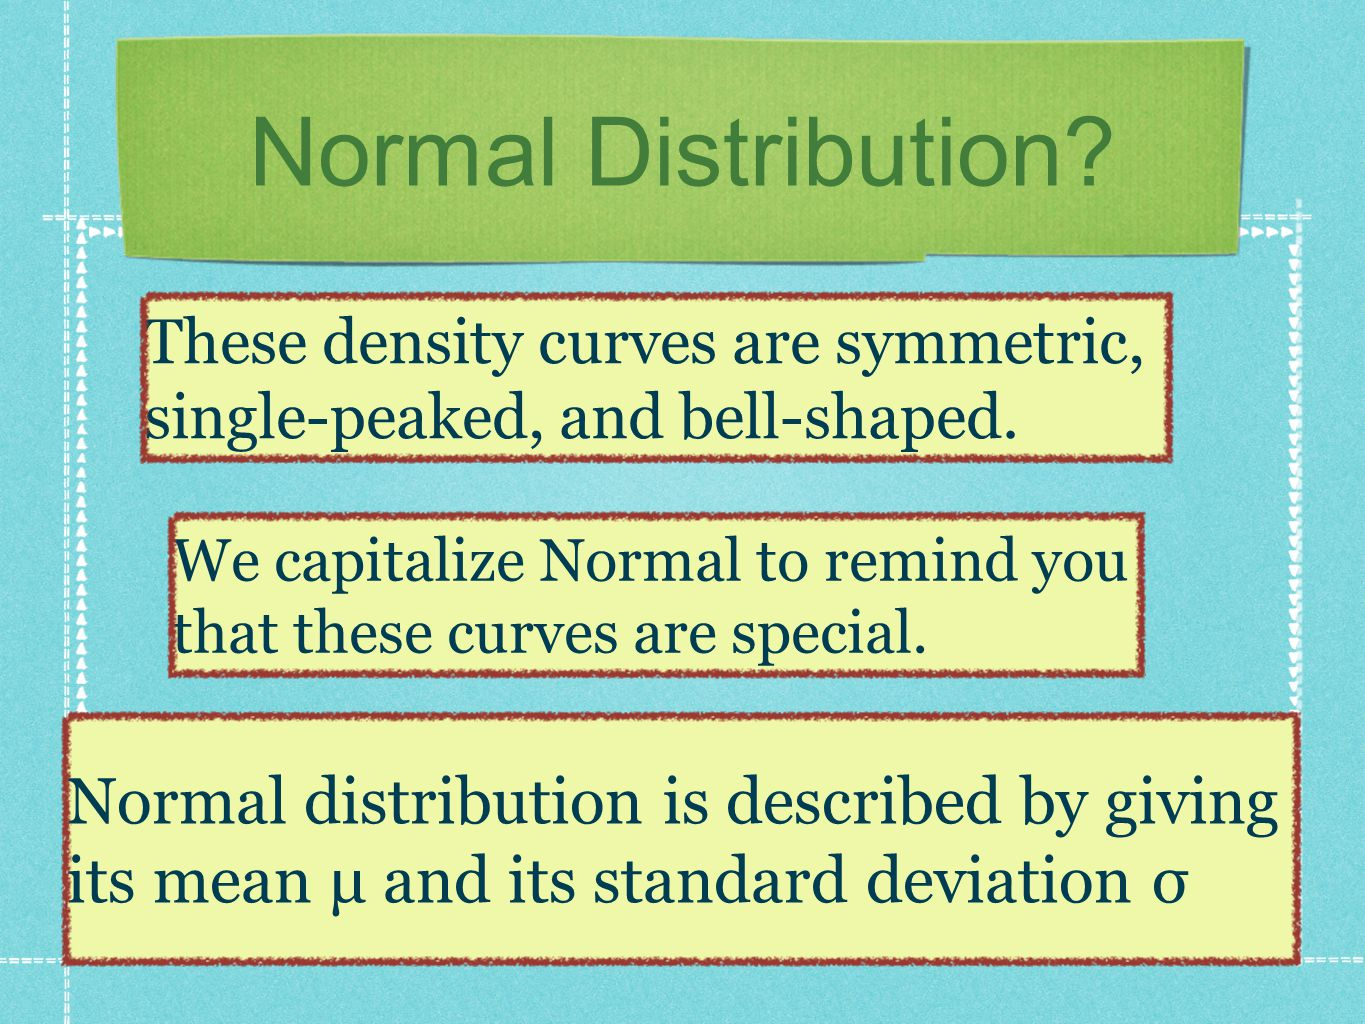 Shape of the Normal curve The standard deviation σ controls the spread of a Normal curve